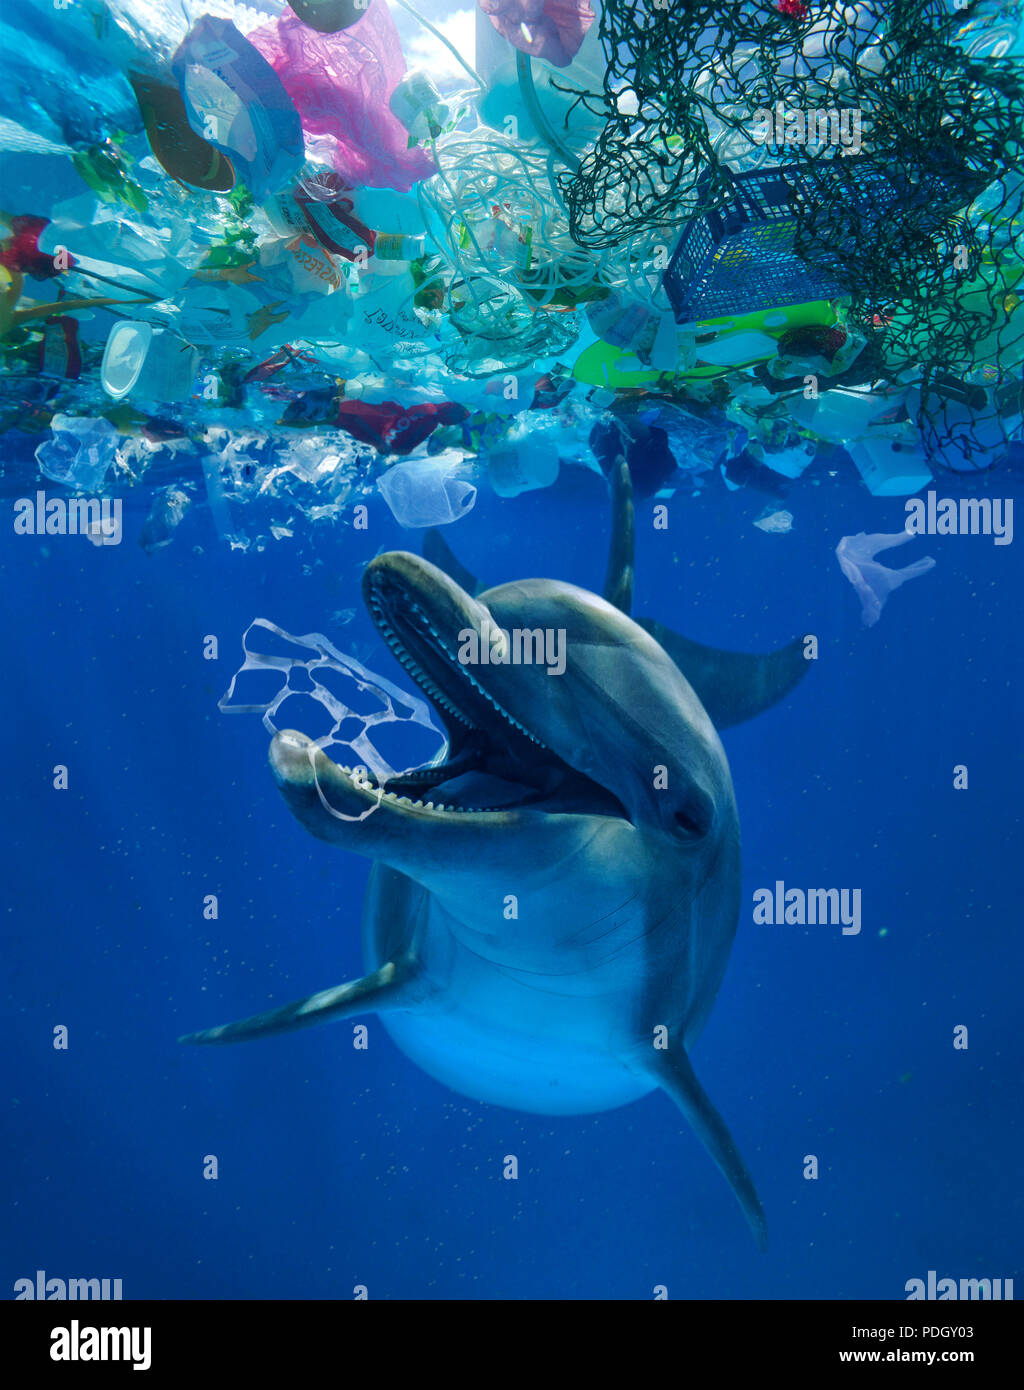 Common bottlenose dolphin playing with a six pack rings found in the middle of a great patch of floating plastic garbage. Eating plastic. - Stock Image